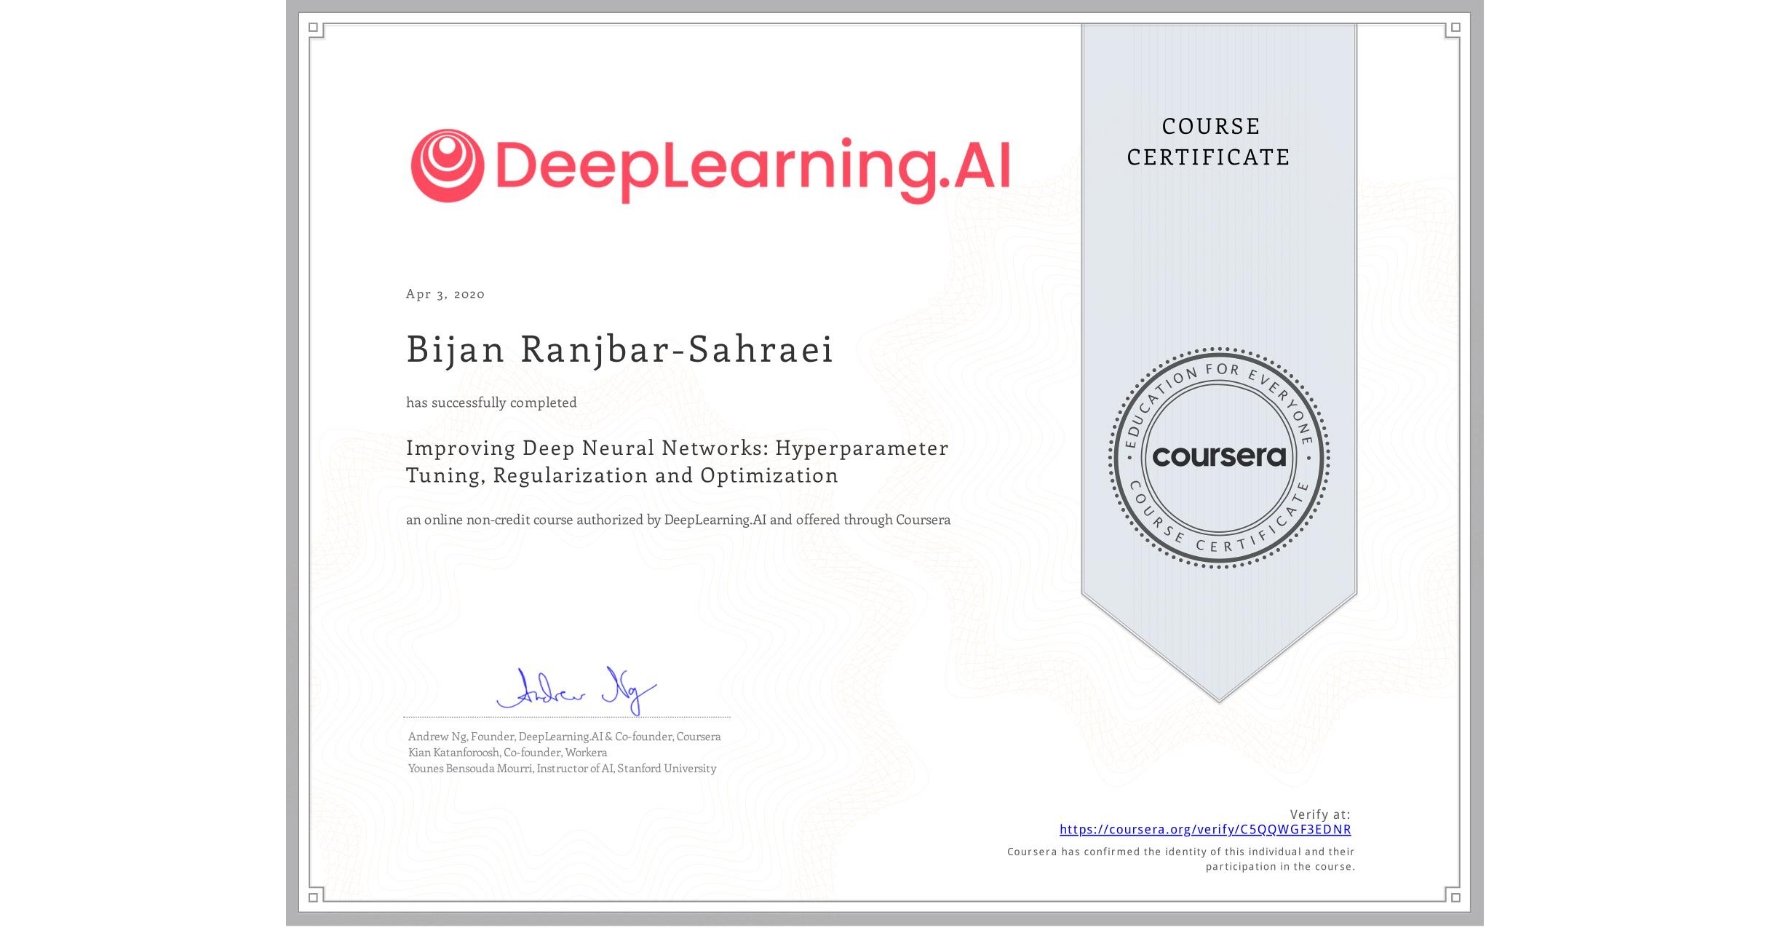 View certificate for Bijan Ranjbar-Sahraei, Improving Deep Neural Networks: Hyperparameter tuning, Regularization and Optimization, an online non-credit course authorized by DeepLearning.AI and offered through Coursera